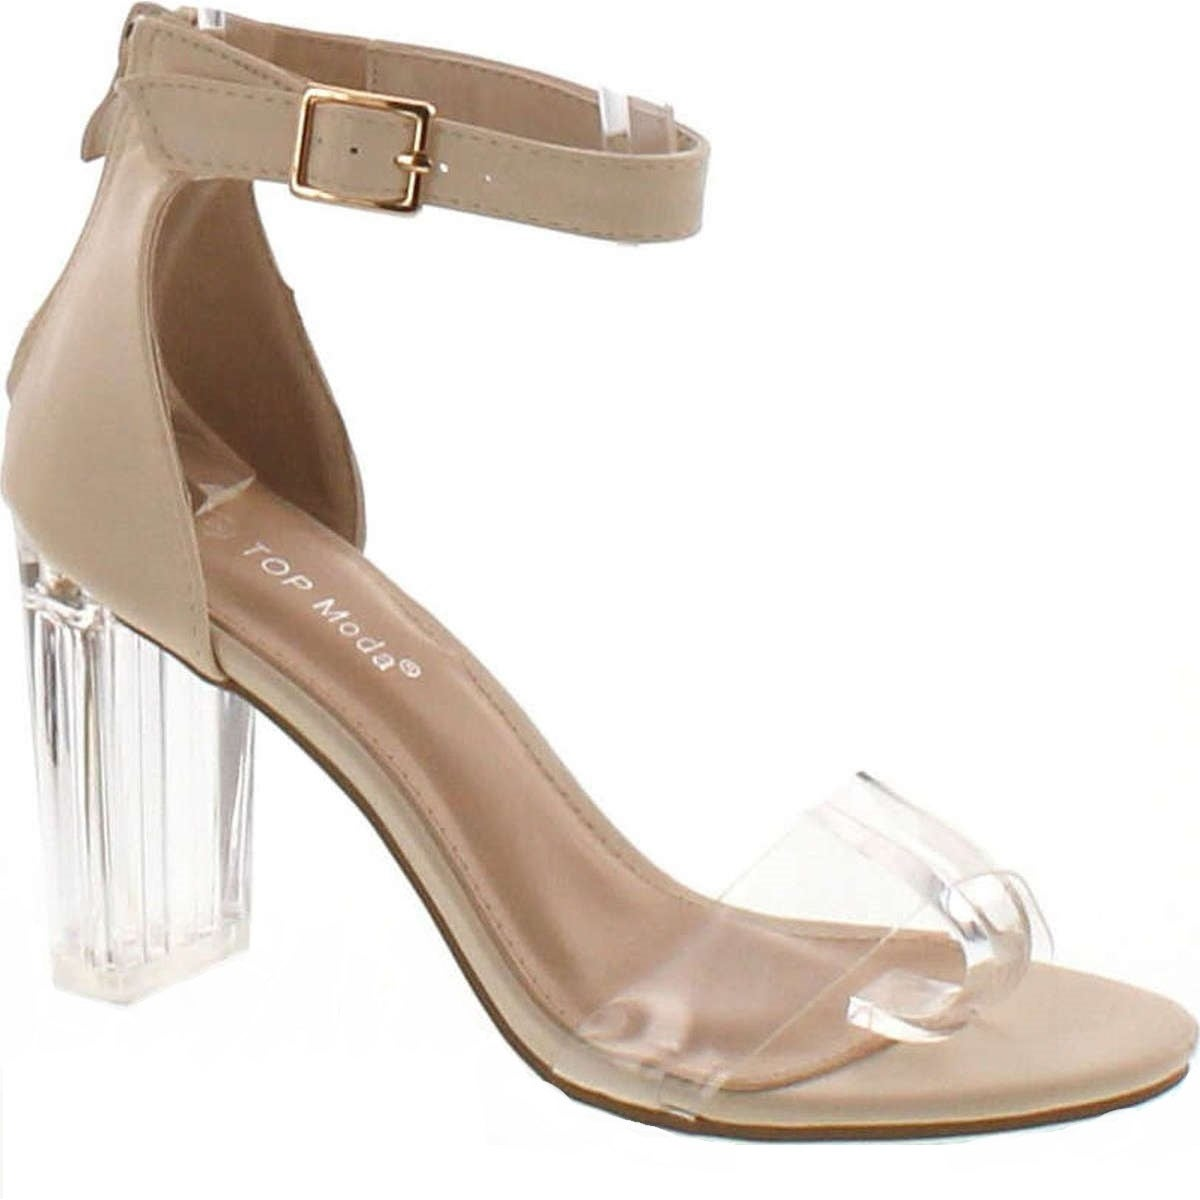 43237103628 Shop Top Moda Women s Alma-55 Lucite Clear Strappy Block Chunky High Heel  Open Peep Toe Sandal - Free Shipping On Orders Over  45 - Overstock -  14820352